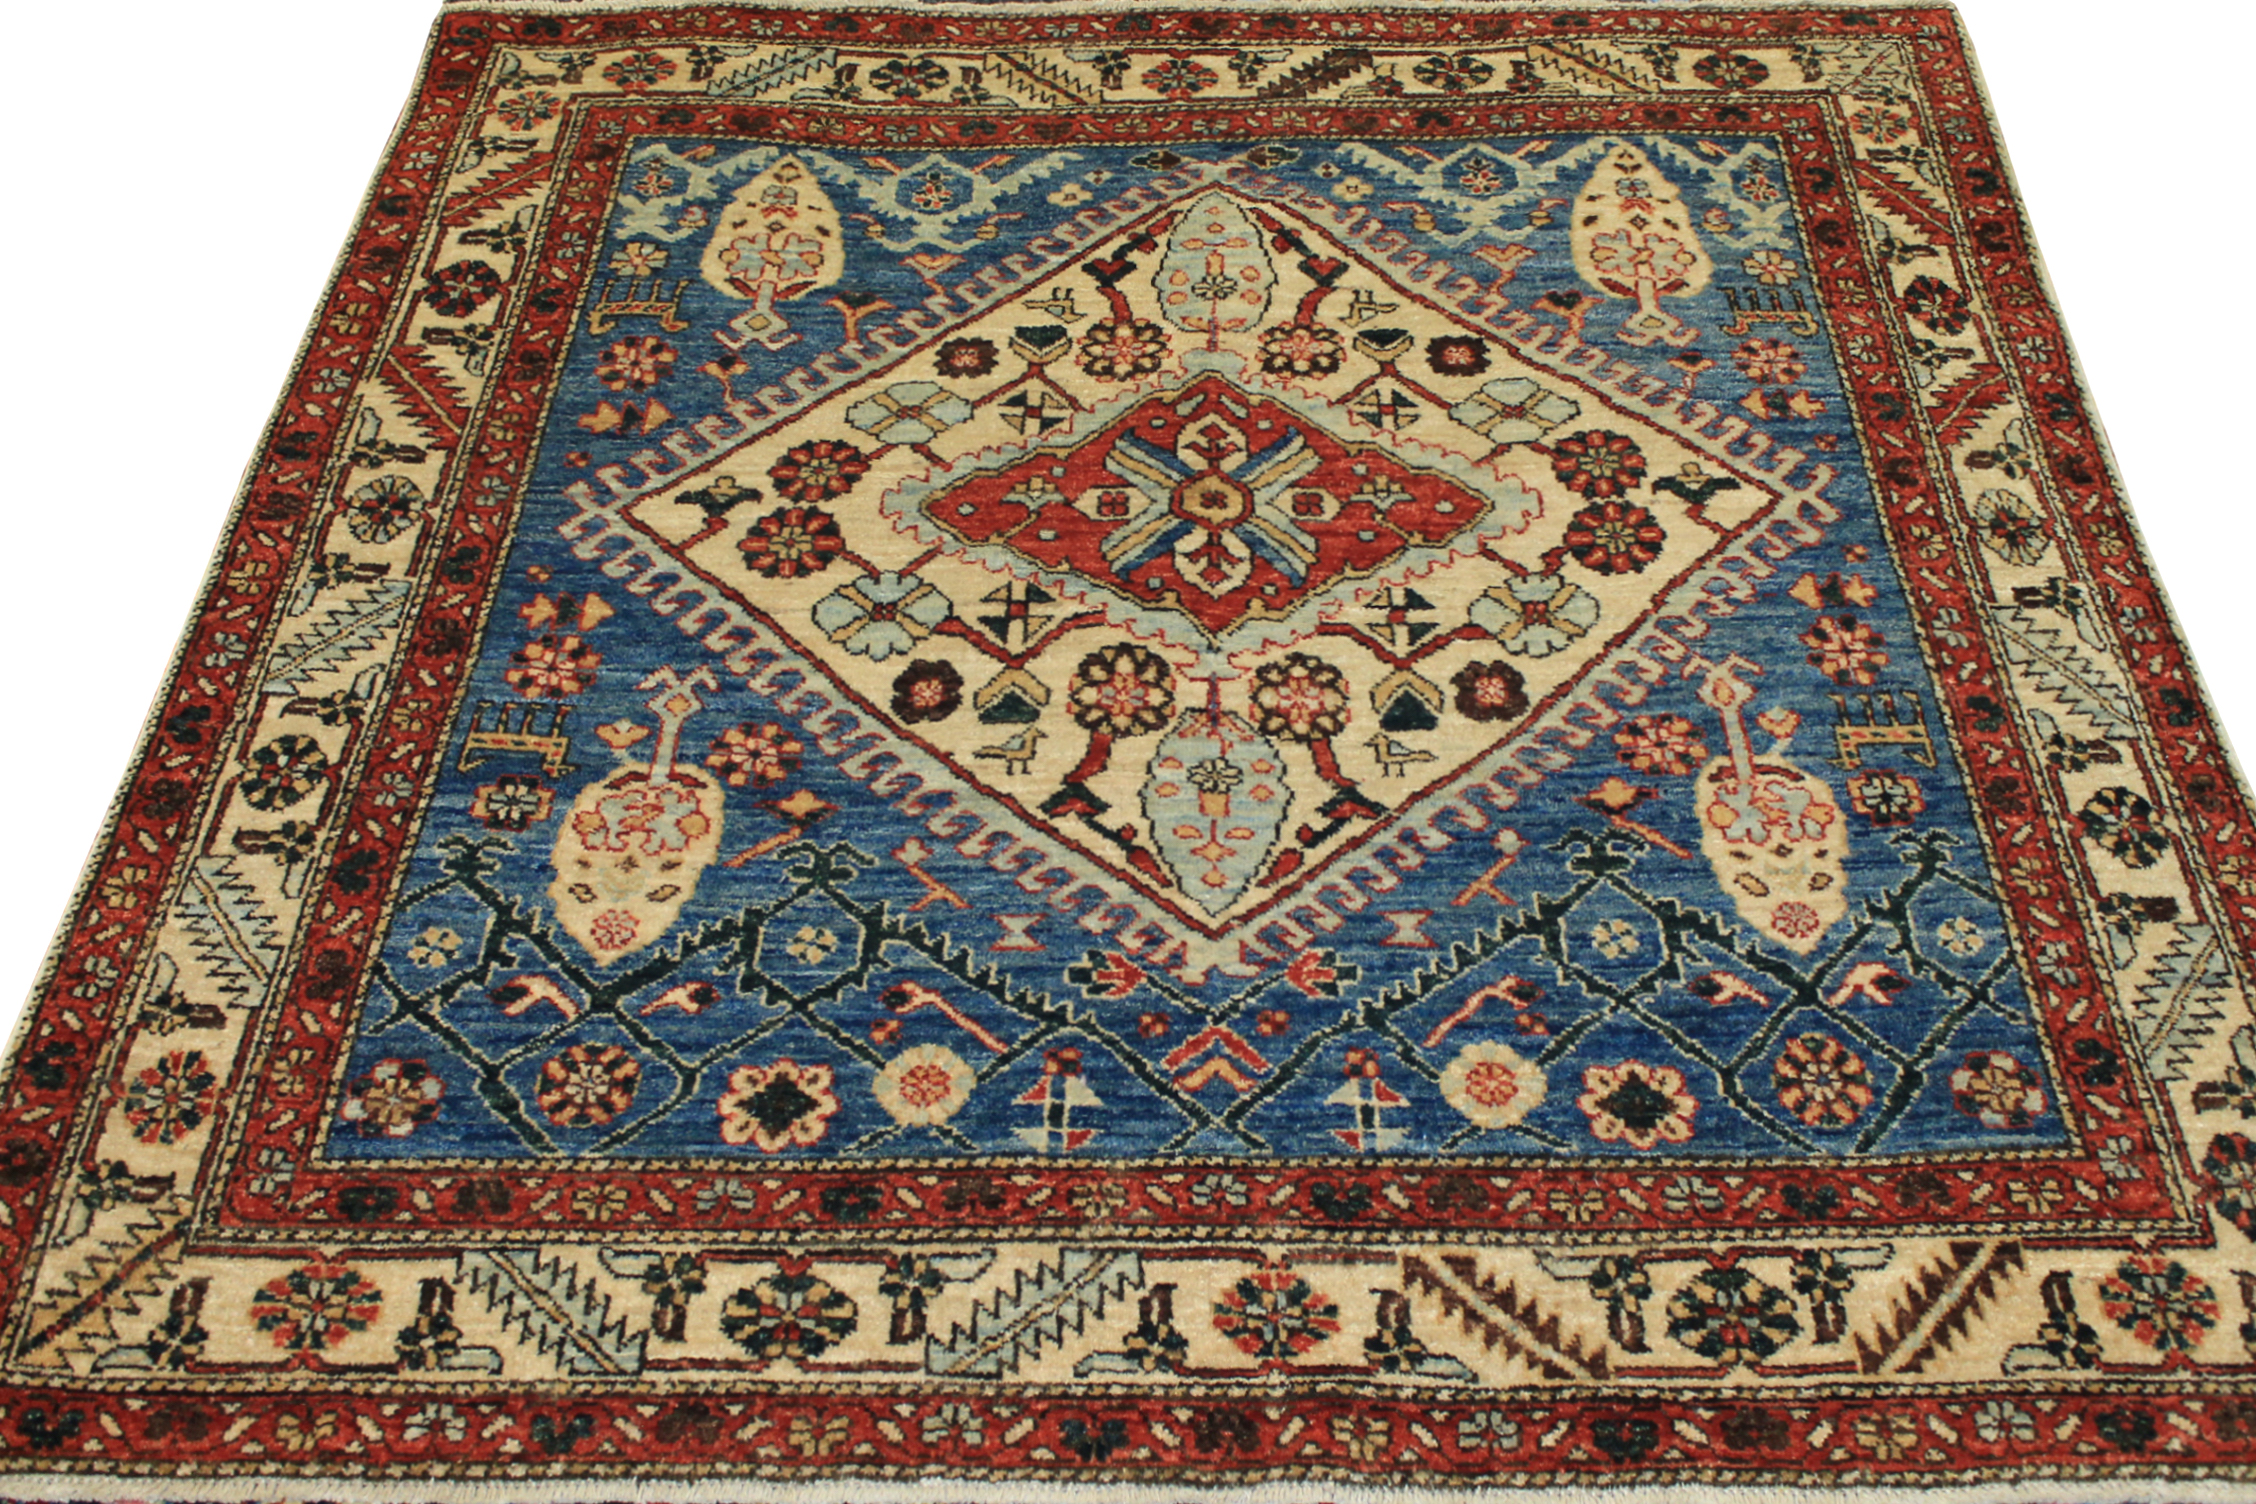 5 ft. Round & Square Antique Revival Hand Knotted Wool Area Rug - MR19579